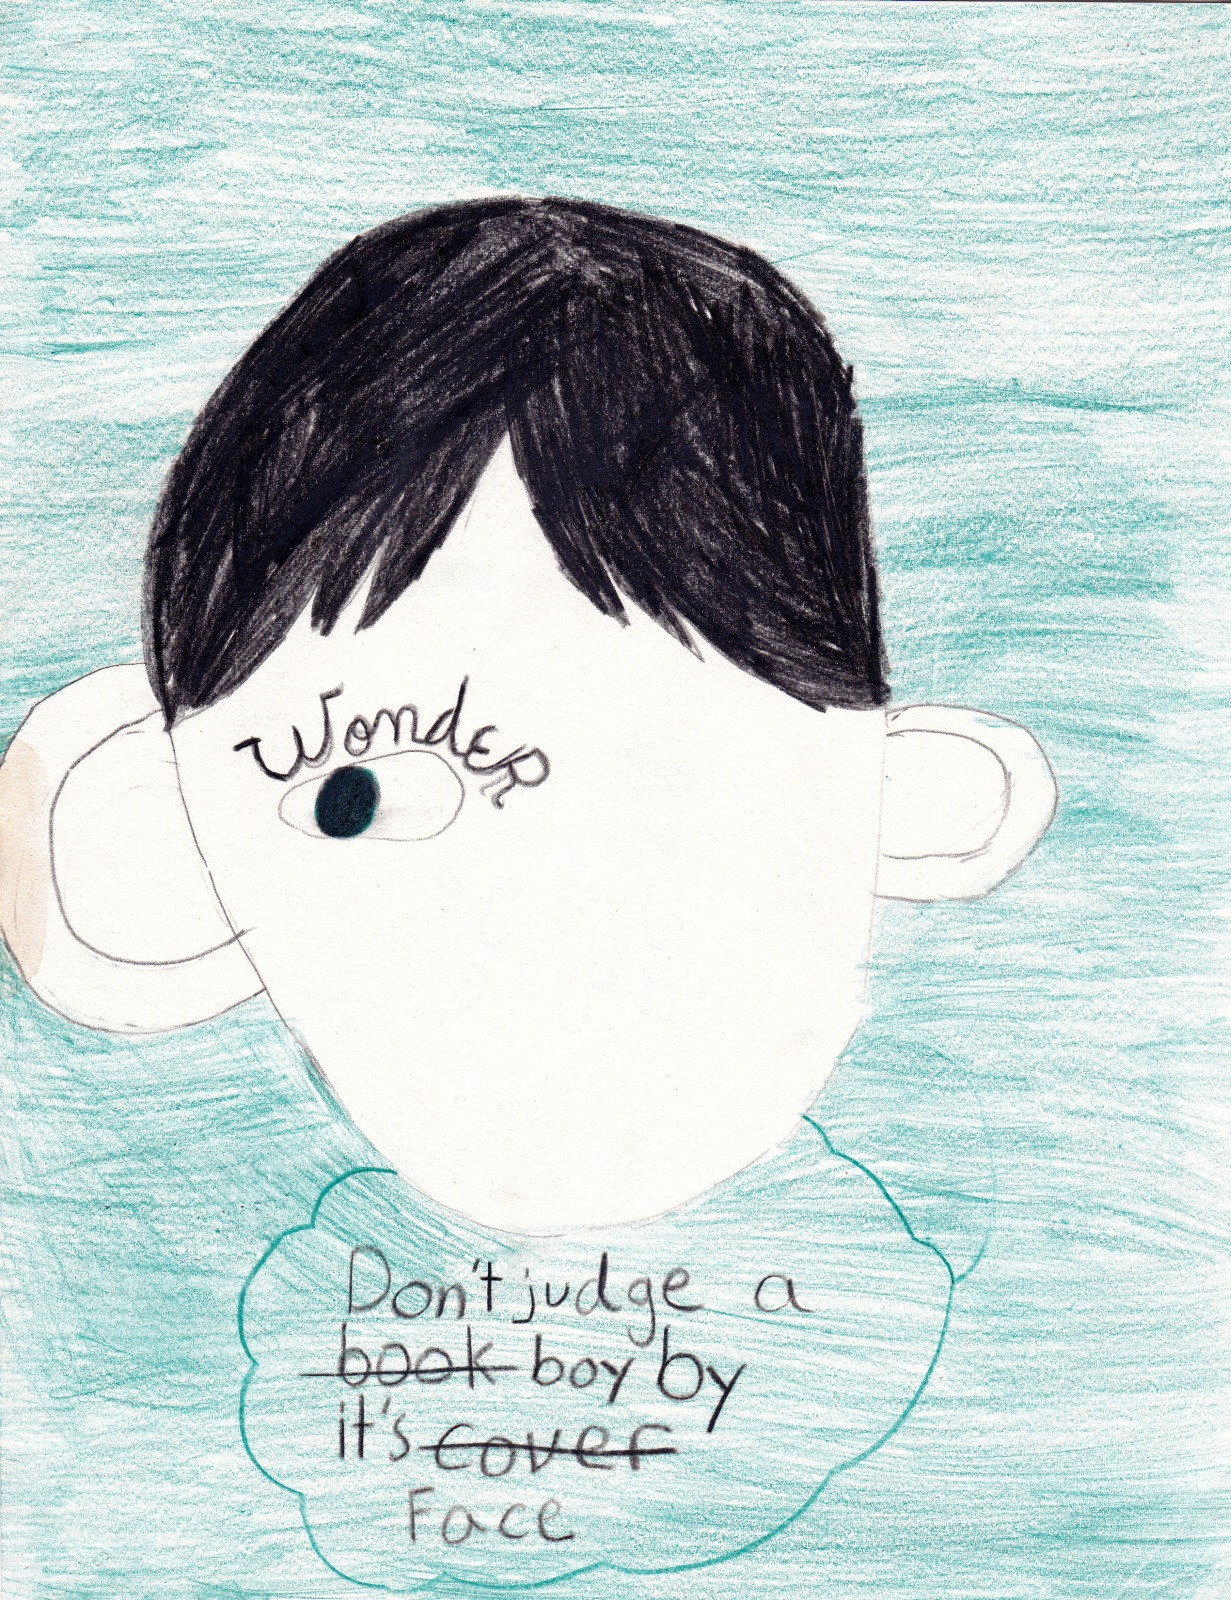 Wonder: Don't Judge A Boy, artwork by Ty Vizenor